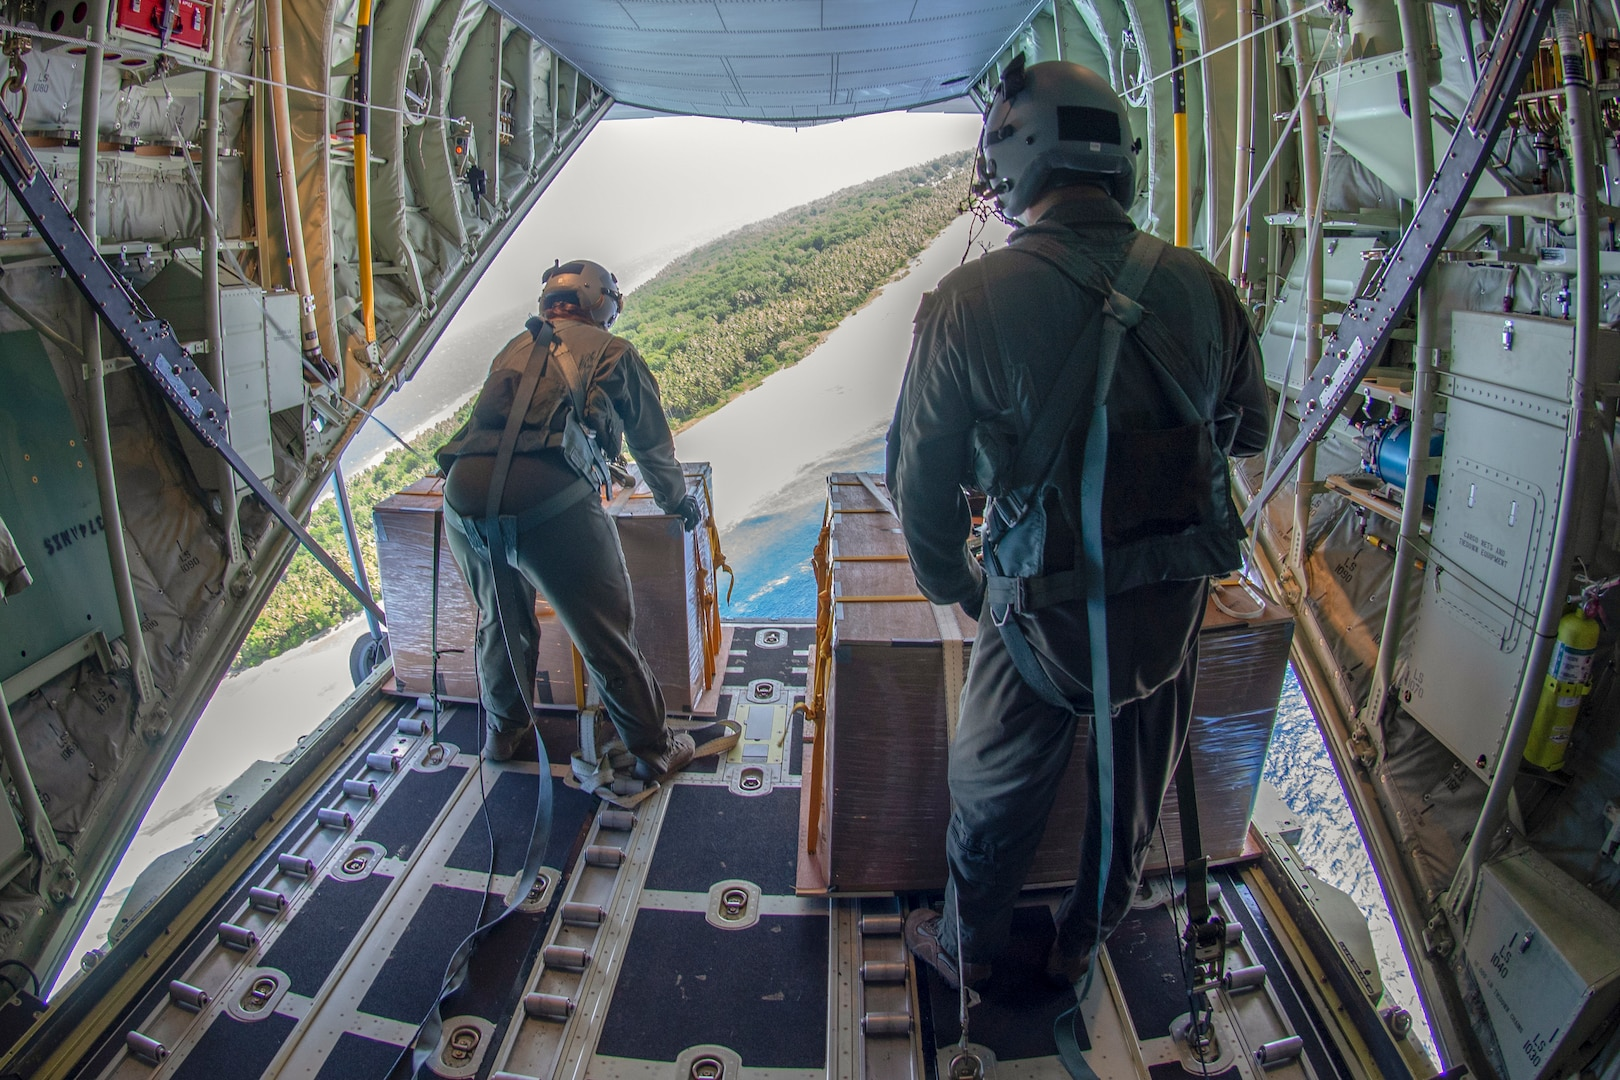 Senior Airman Kylie Hanni, left, and Airman 1st Class Jaime Suarez, right, both 36th Airlift Squadron loadmasters out of Yokota Air Base, Japan, verify their drop zone over the island of Nama, Federated States of Micronesia, during Operation Christmas Drop 2018, Dec. 10, 2018. The flight, carrying Commander, U.S. Indo-Pacific Command, Adm. Phil Davidson and local leaders from the FSM, gave the passengers a firsthand experience into how the aircrews that attend OCD execute the mission. While aboard, Davidson stressed the importance of OCD, a trilateral operation between the U.S. Air Force, Japan Air Self-Defense Force (Koku Jietai), and the Royal Australian Air Force, plays in maintaining the mutual security in the Pacific island chain.